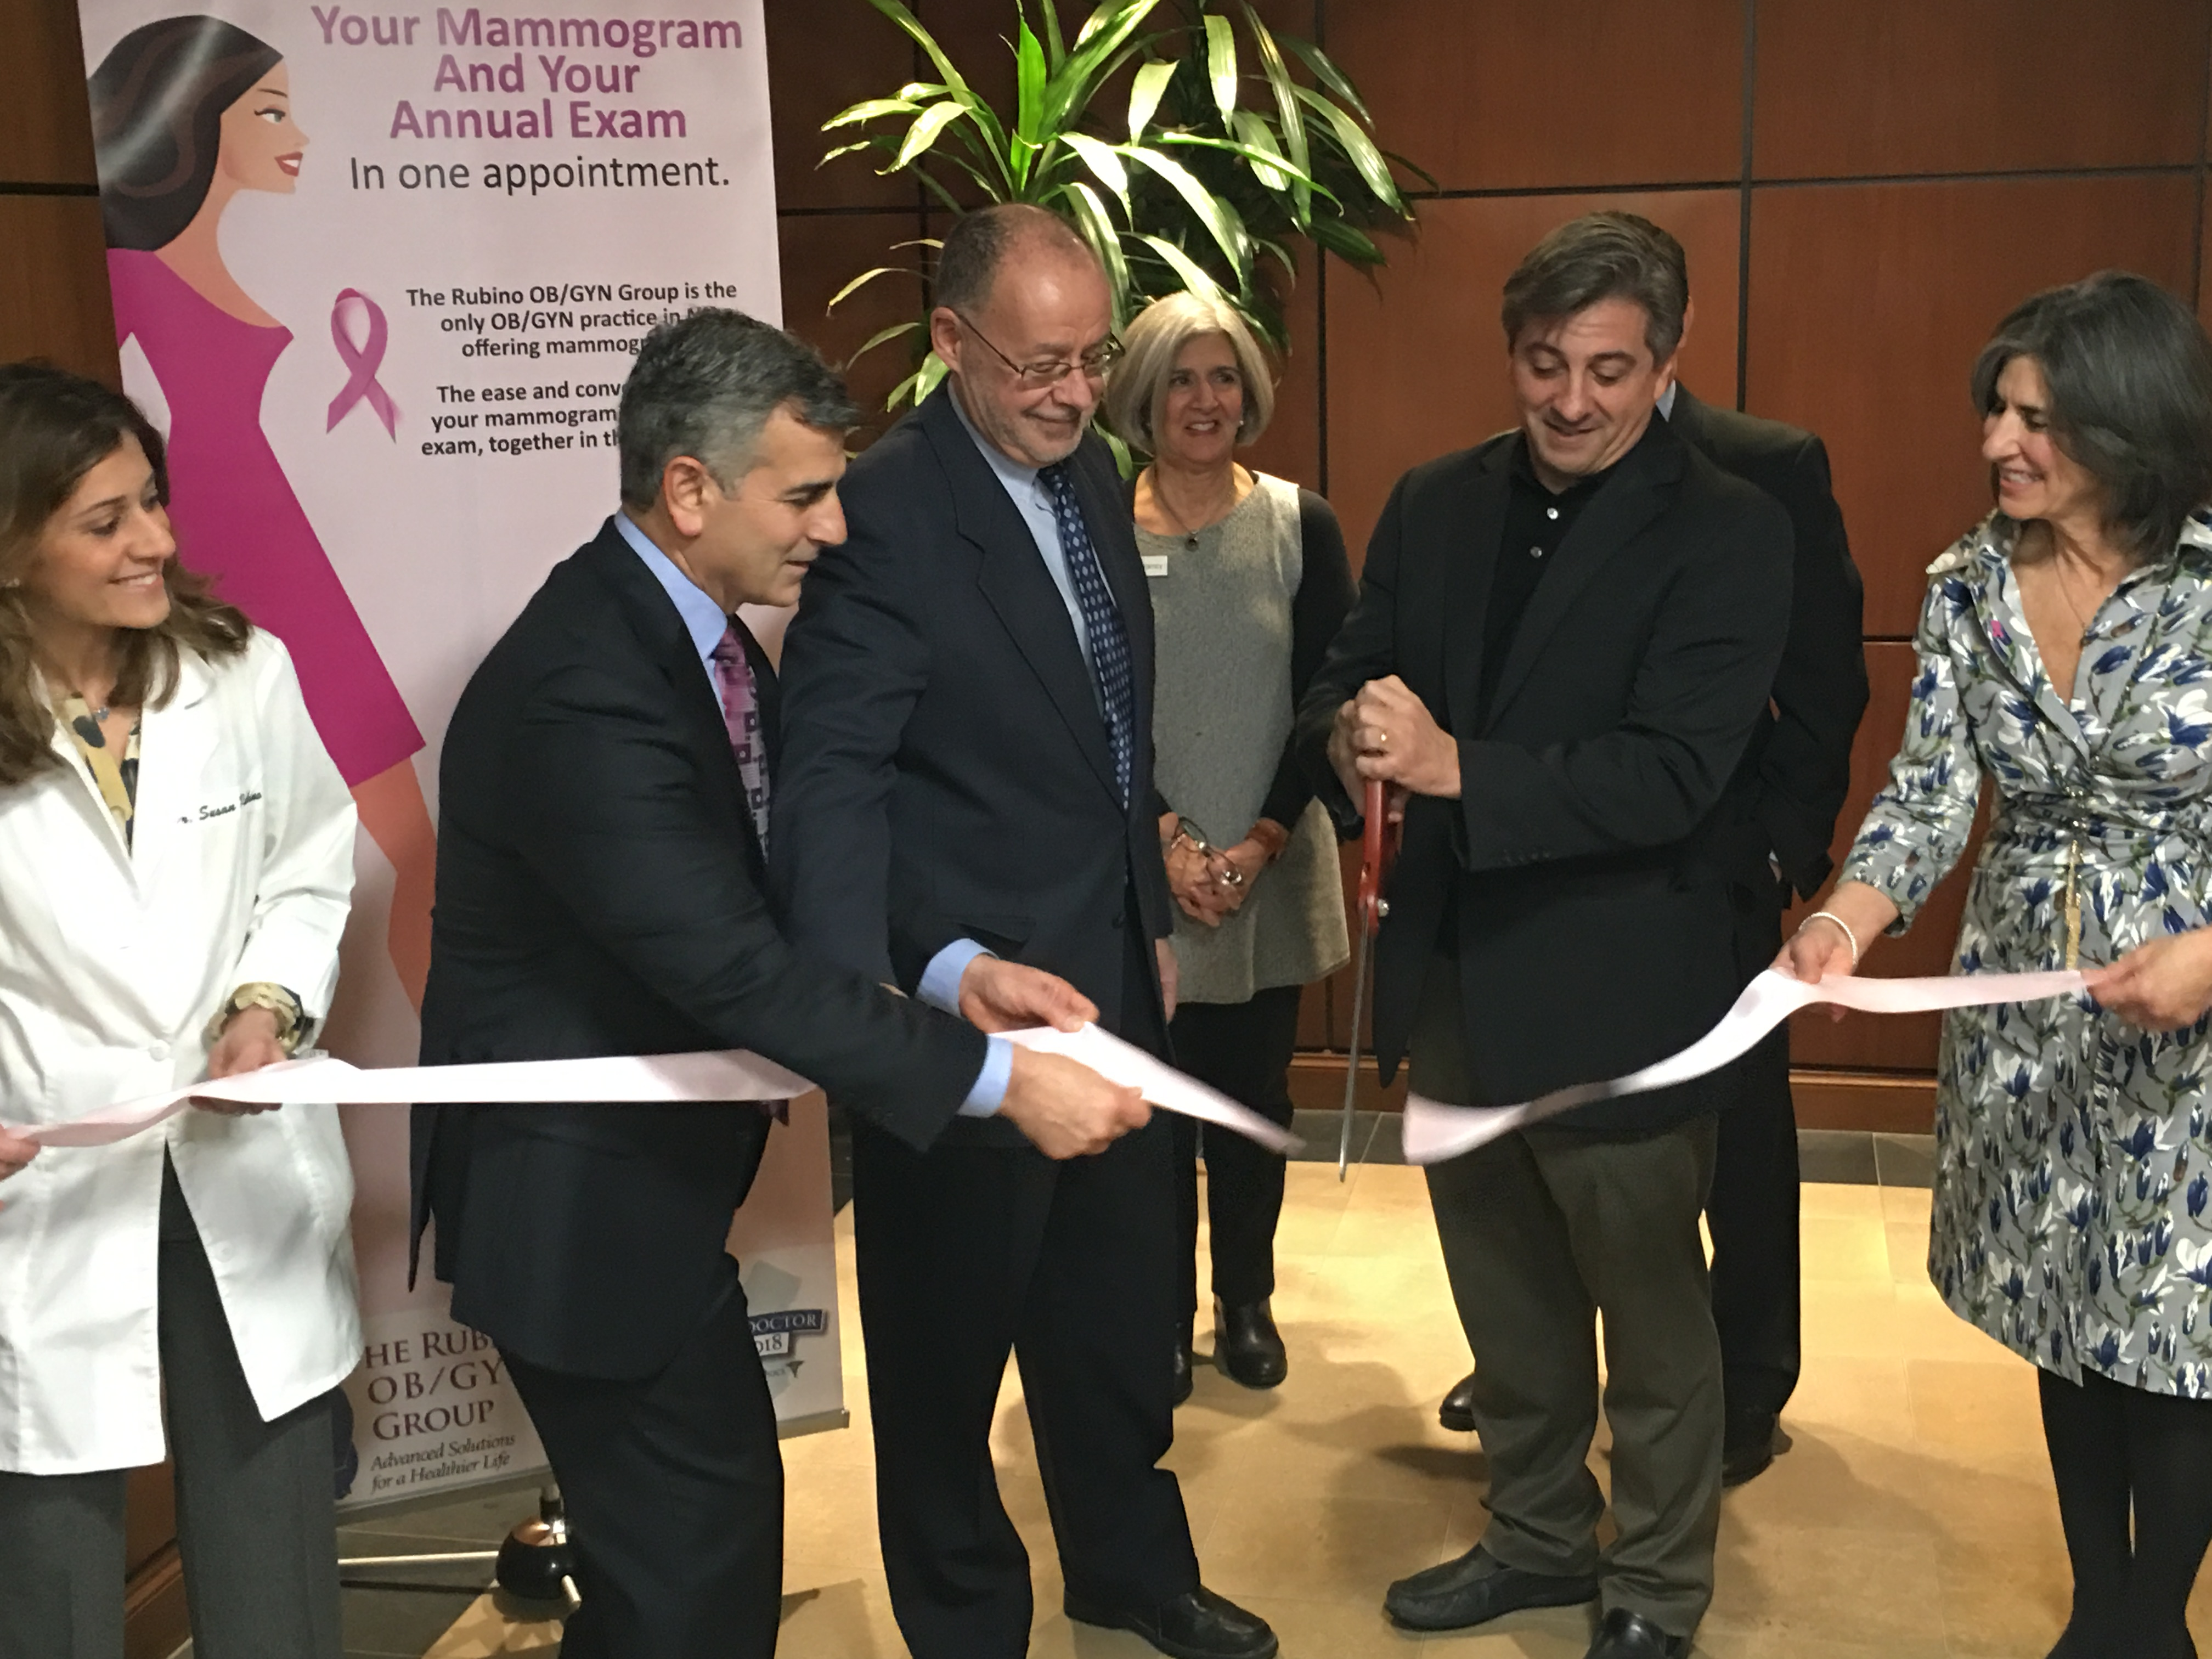 Rubino OB/GYN Group Mammography Center